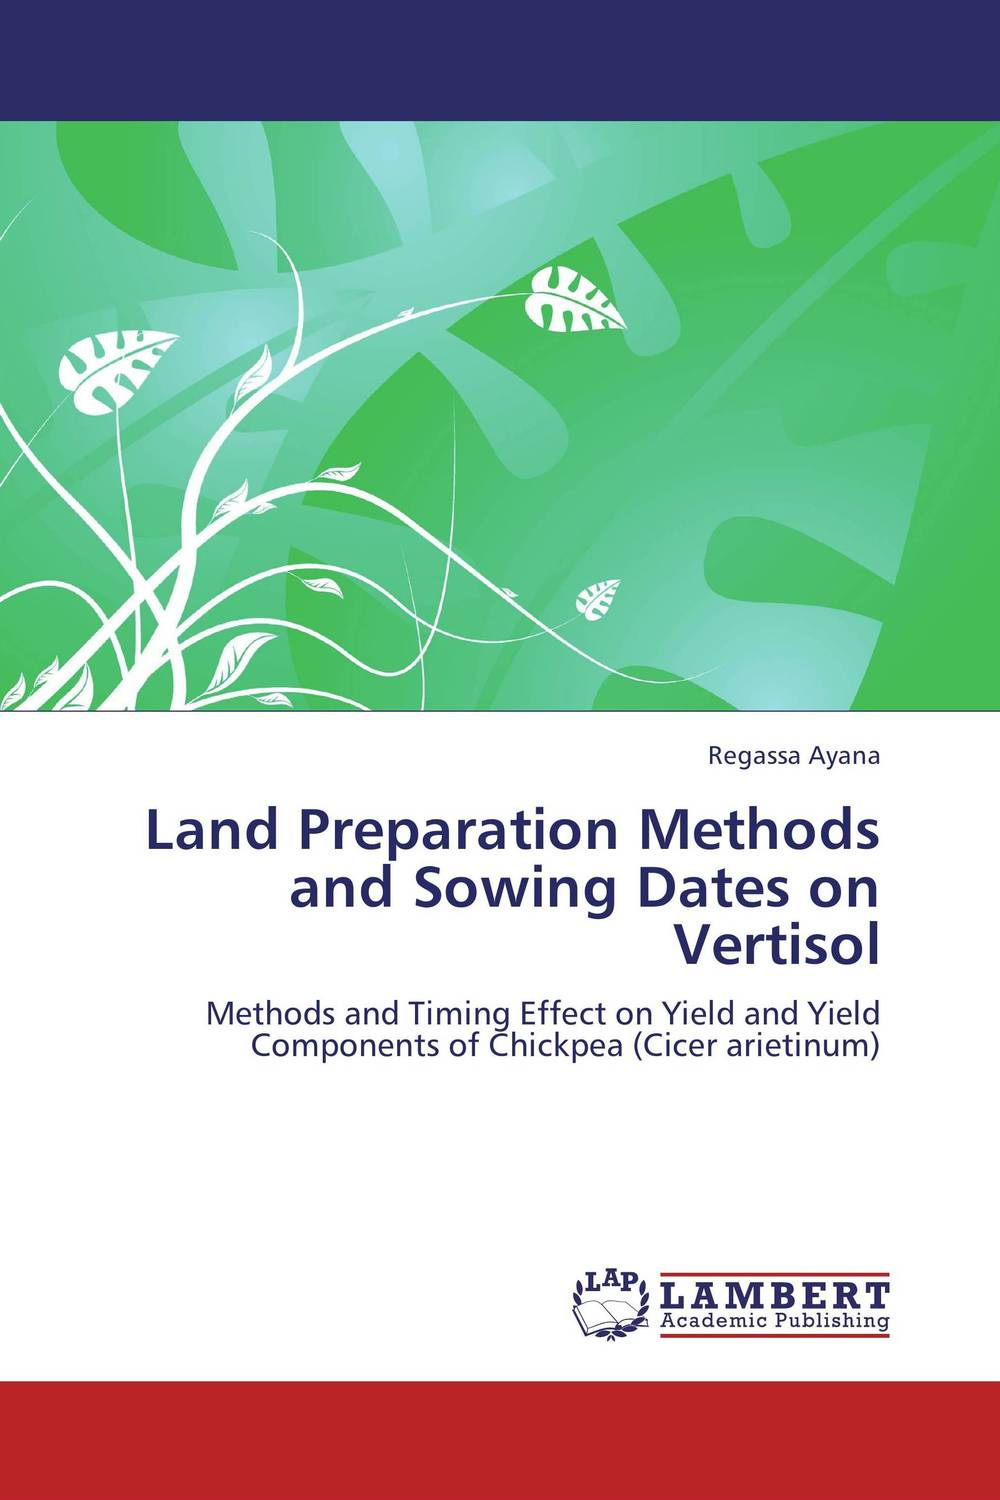 Land Preparation Methods and Sowing Dates on Vertisol phosphorus sorption chractersitics of some soils of southern ethiopia